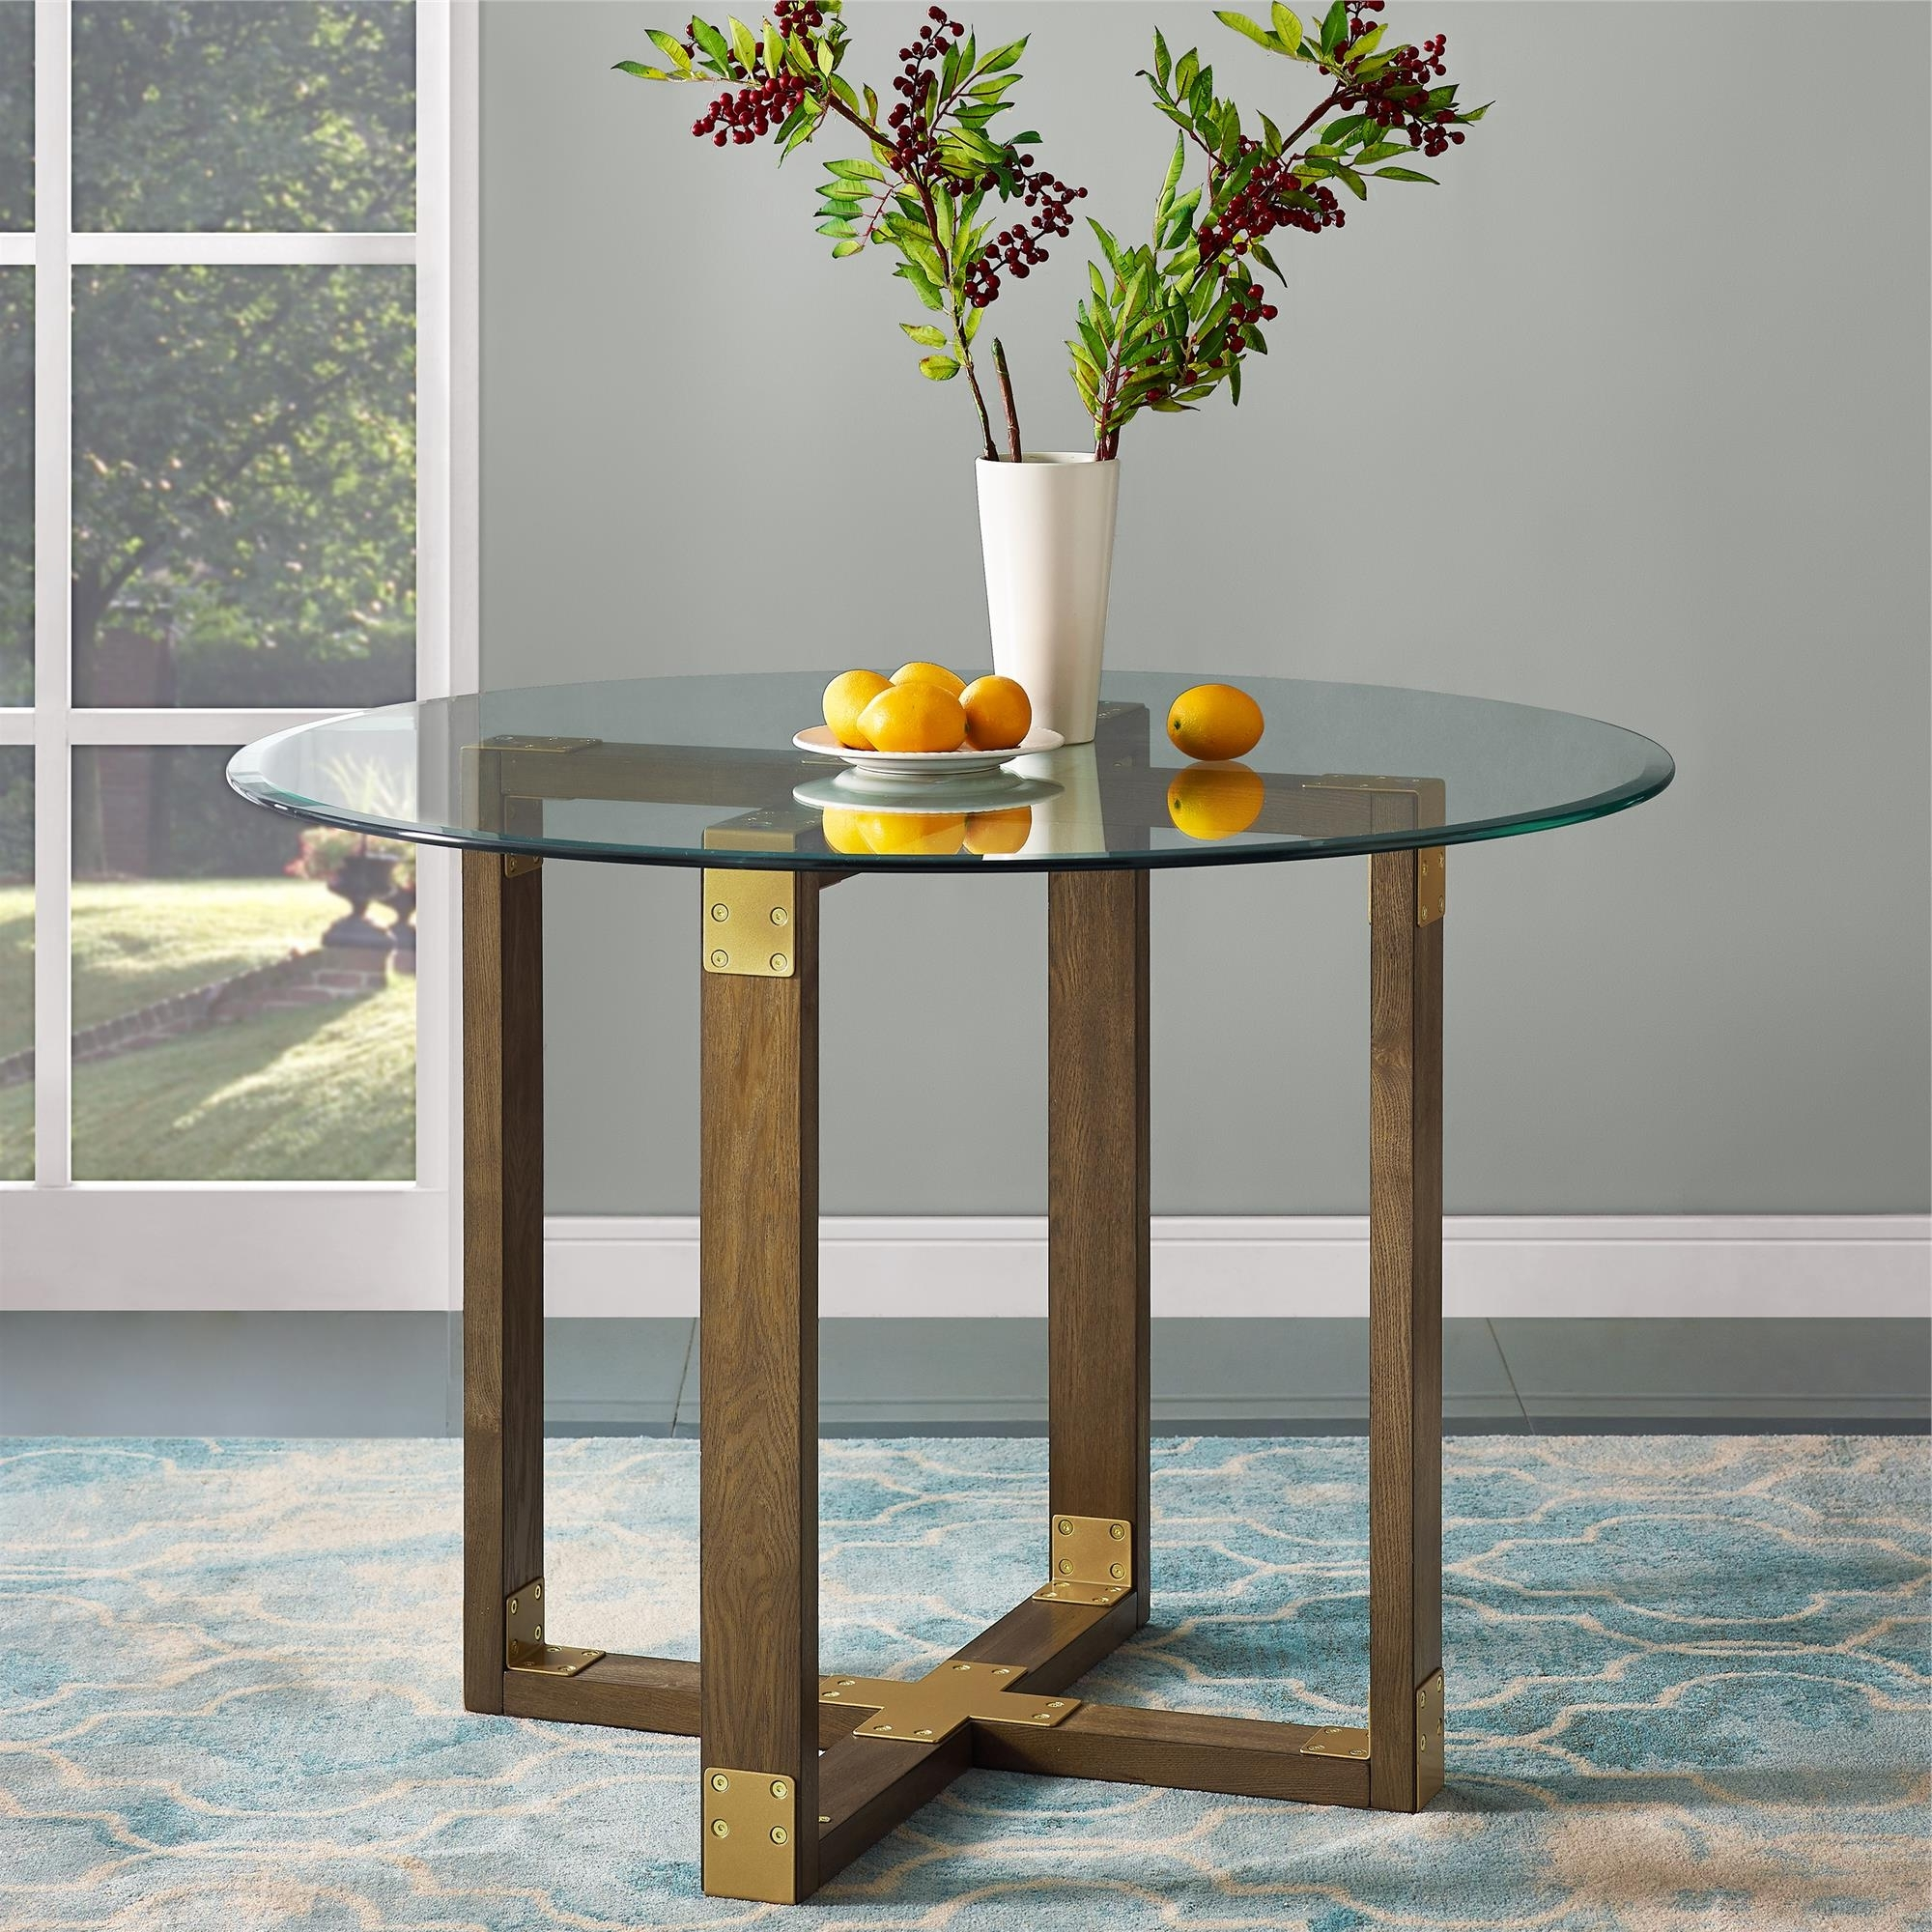 Dorel Living Bronx Glass Top Dining Table, Rustic Oak (Gallery 14 of 25)